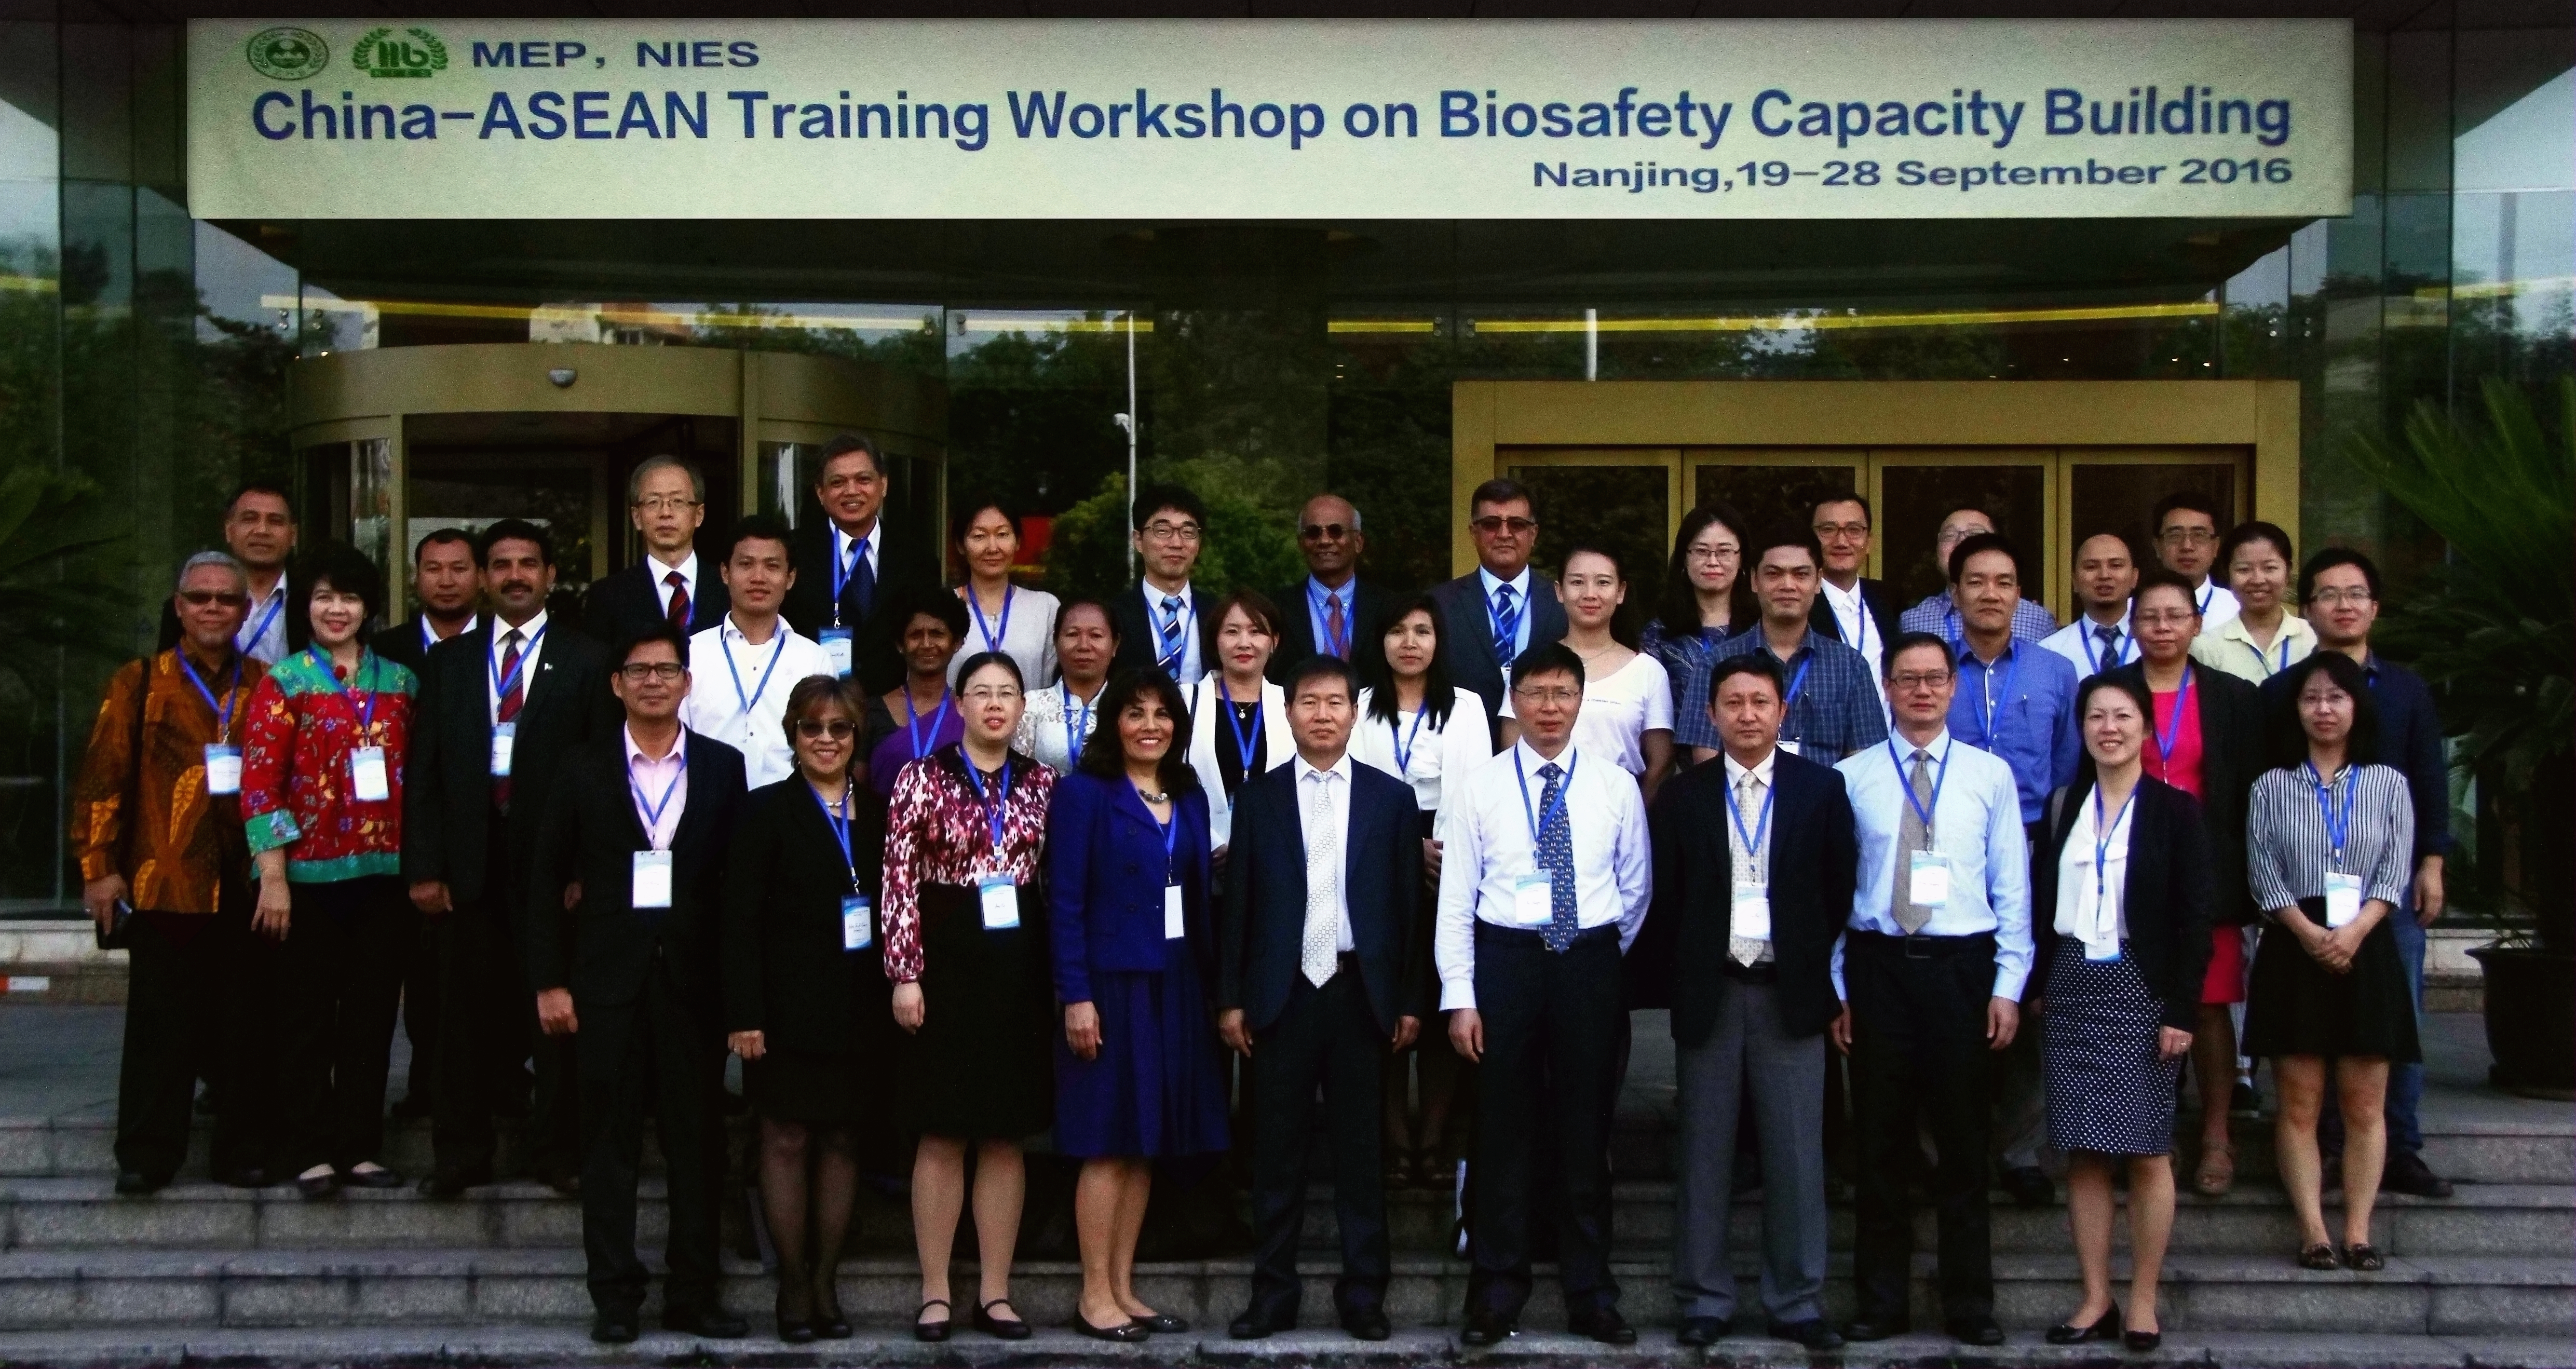 2016 : China-ASEAN Training Workshop on Biosafety Capacity Building